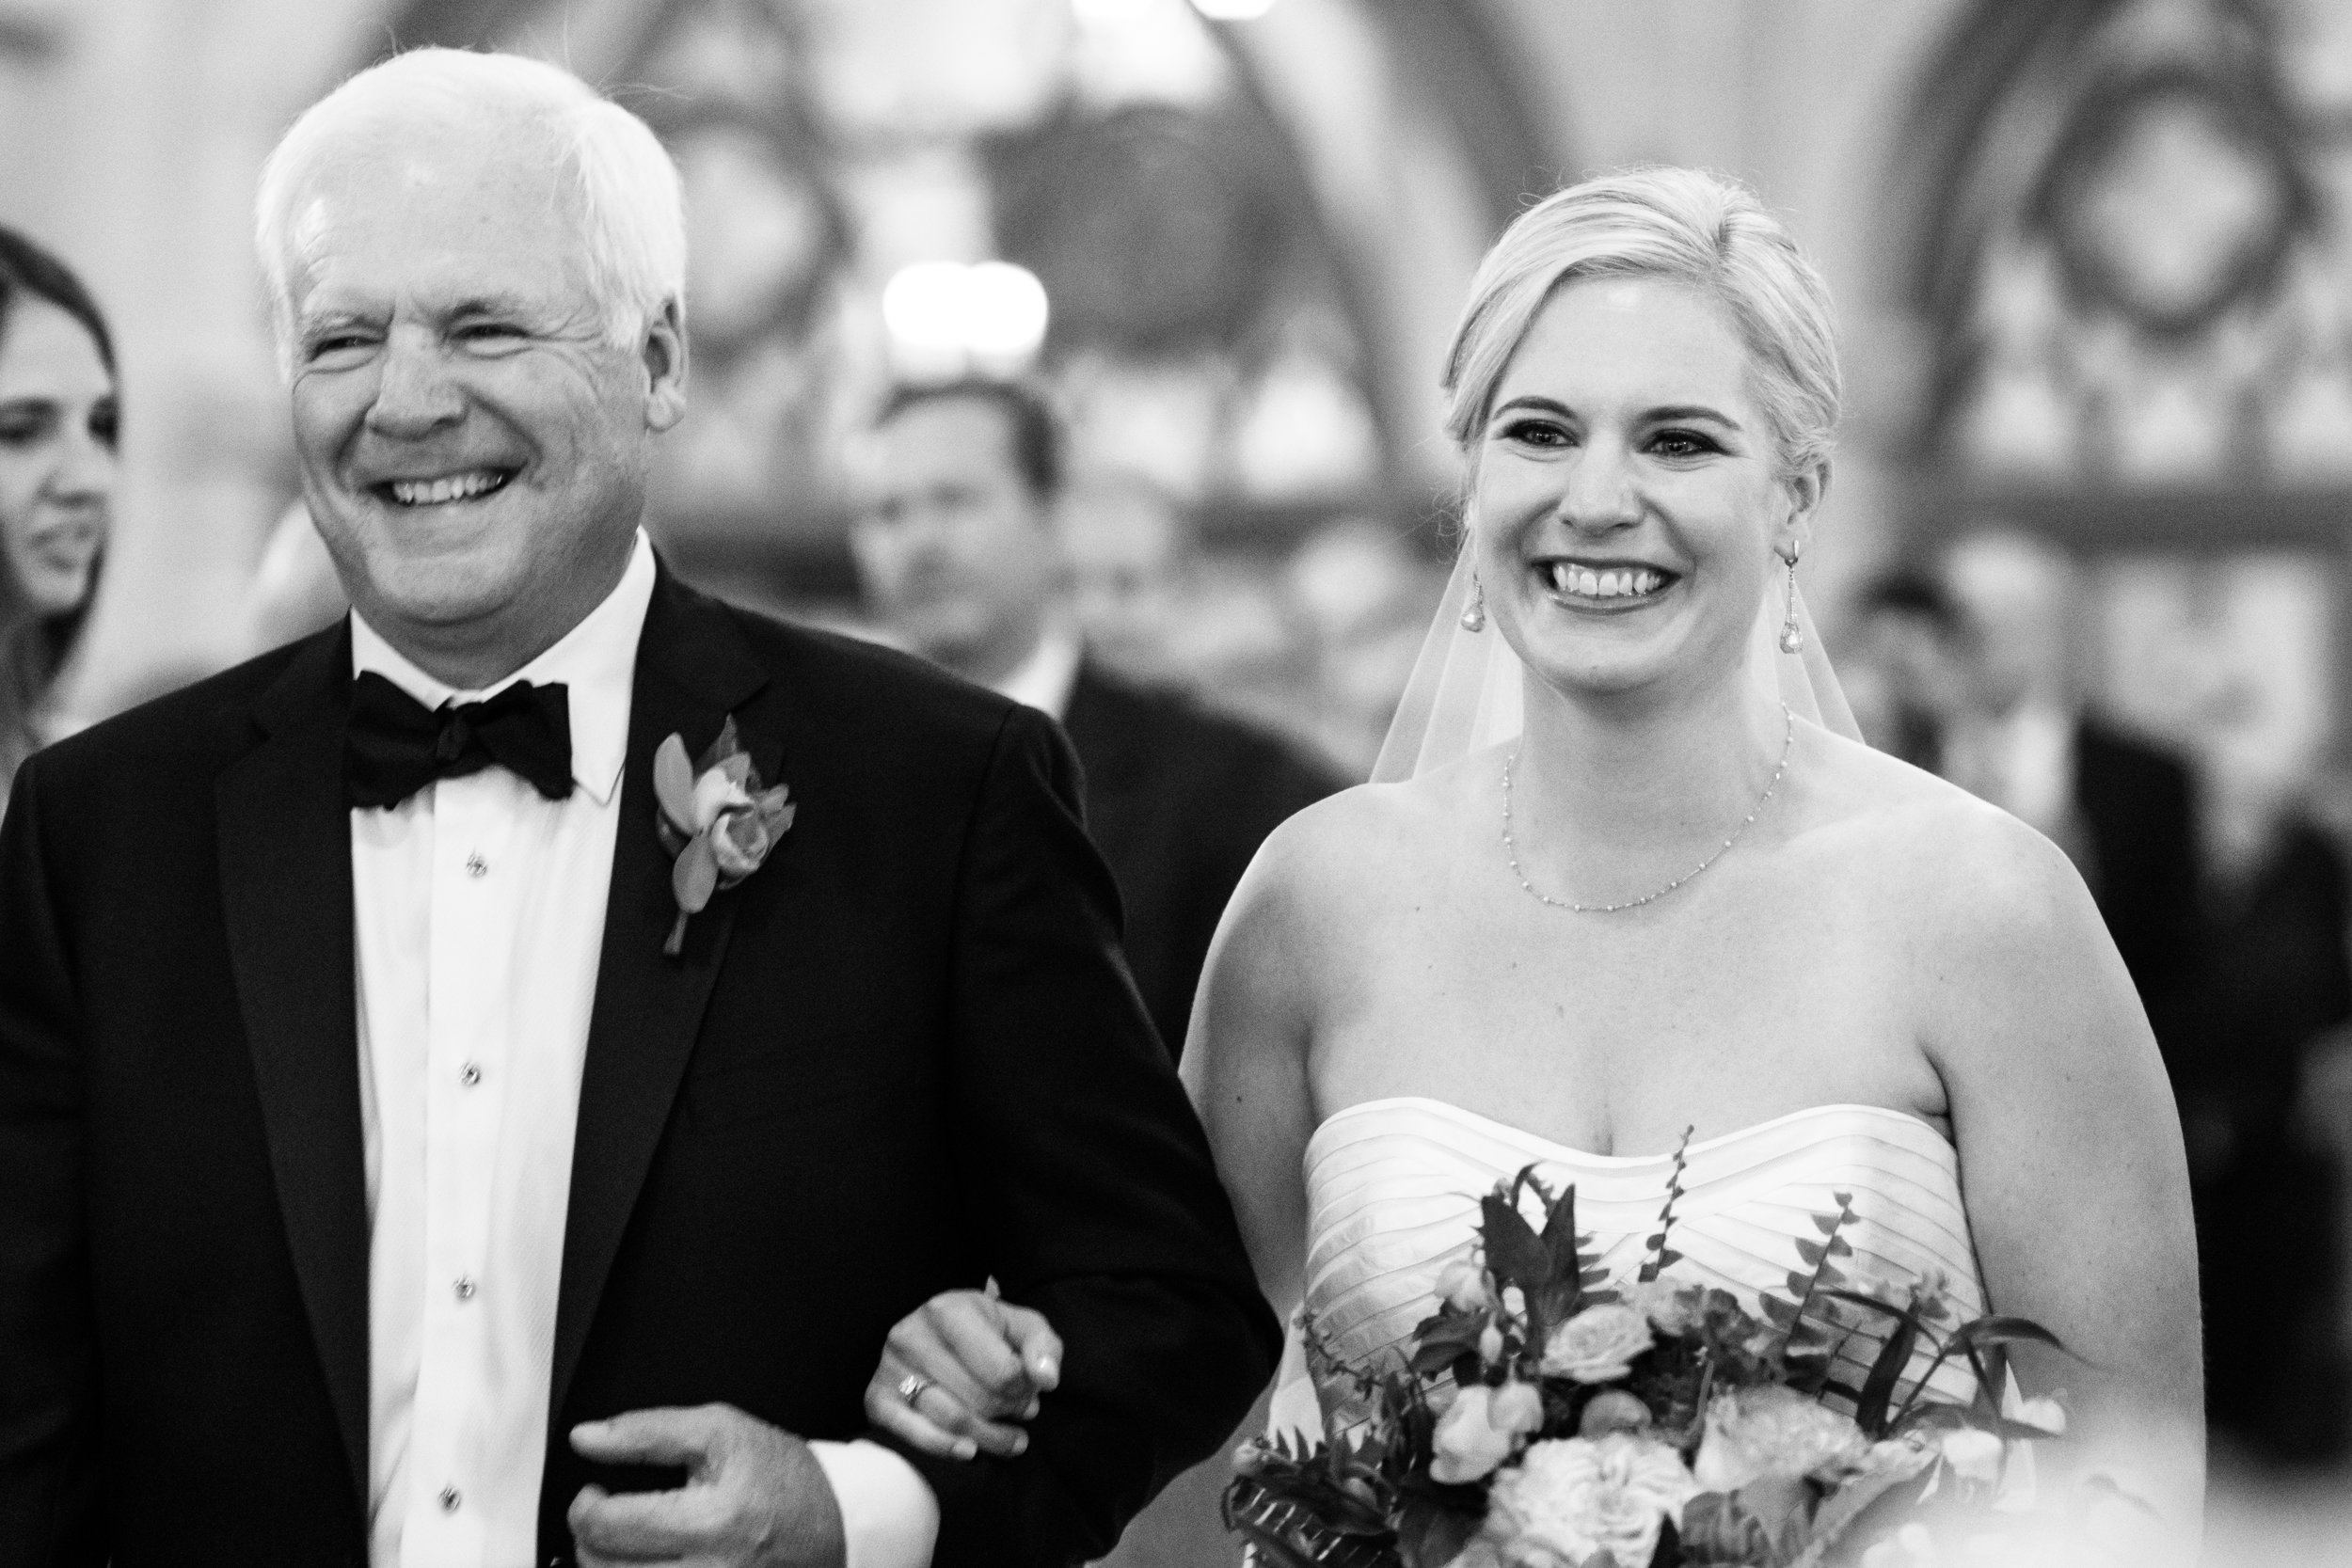 Dad and Bride walking down the aisle